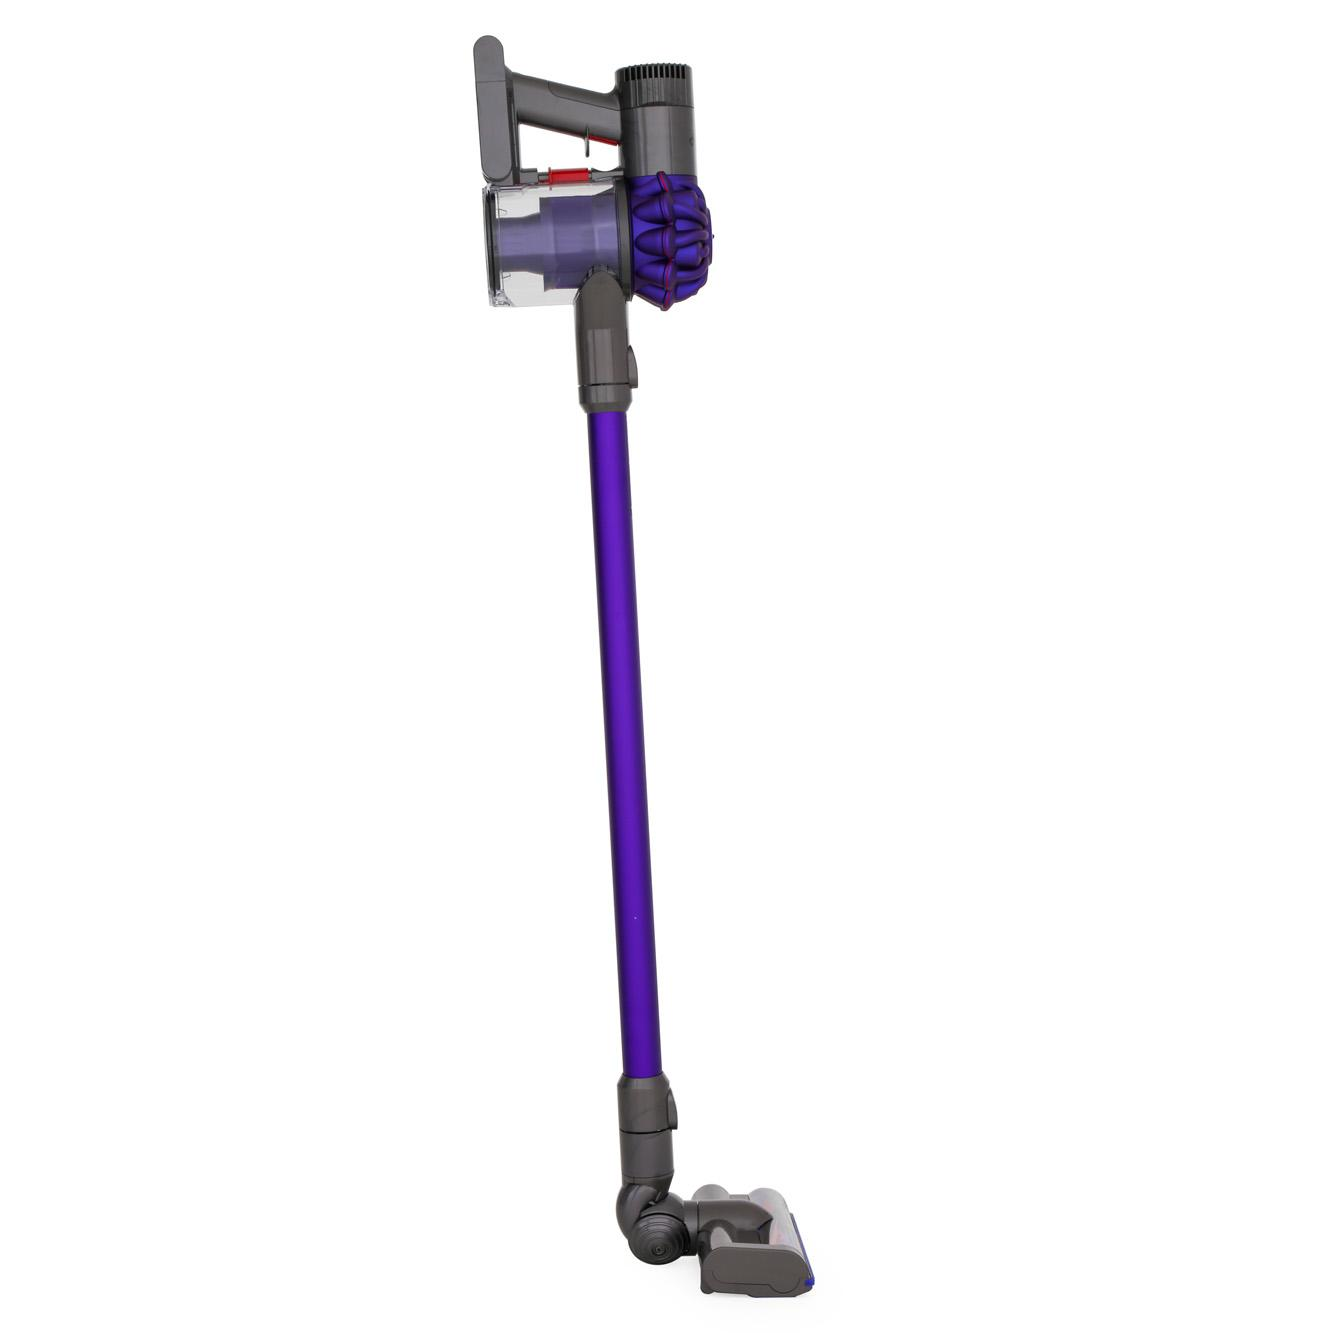 Buy Dyson V6 Animal Hand Held Vacuum Cleaner V6animal